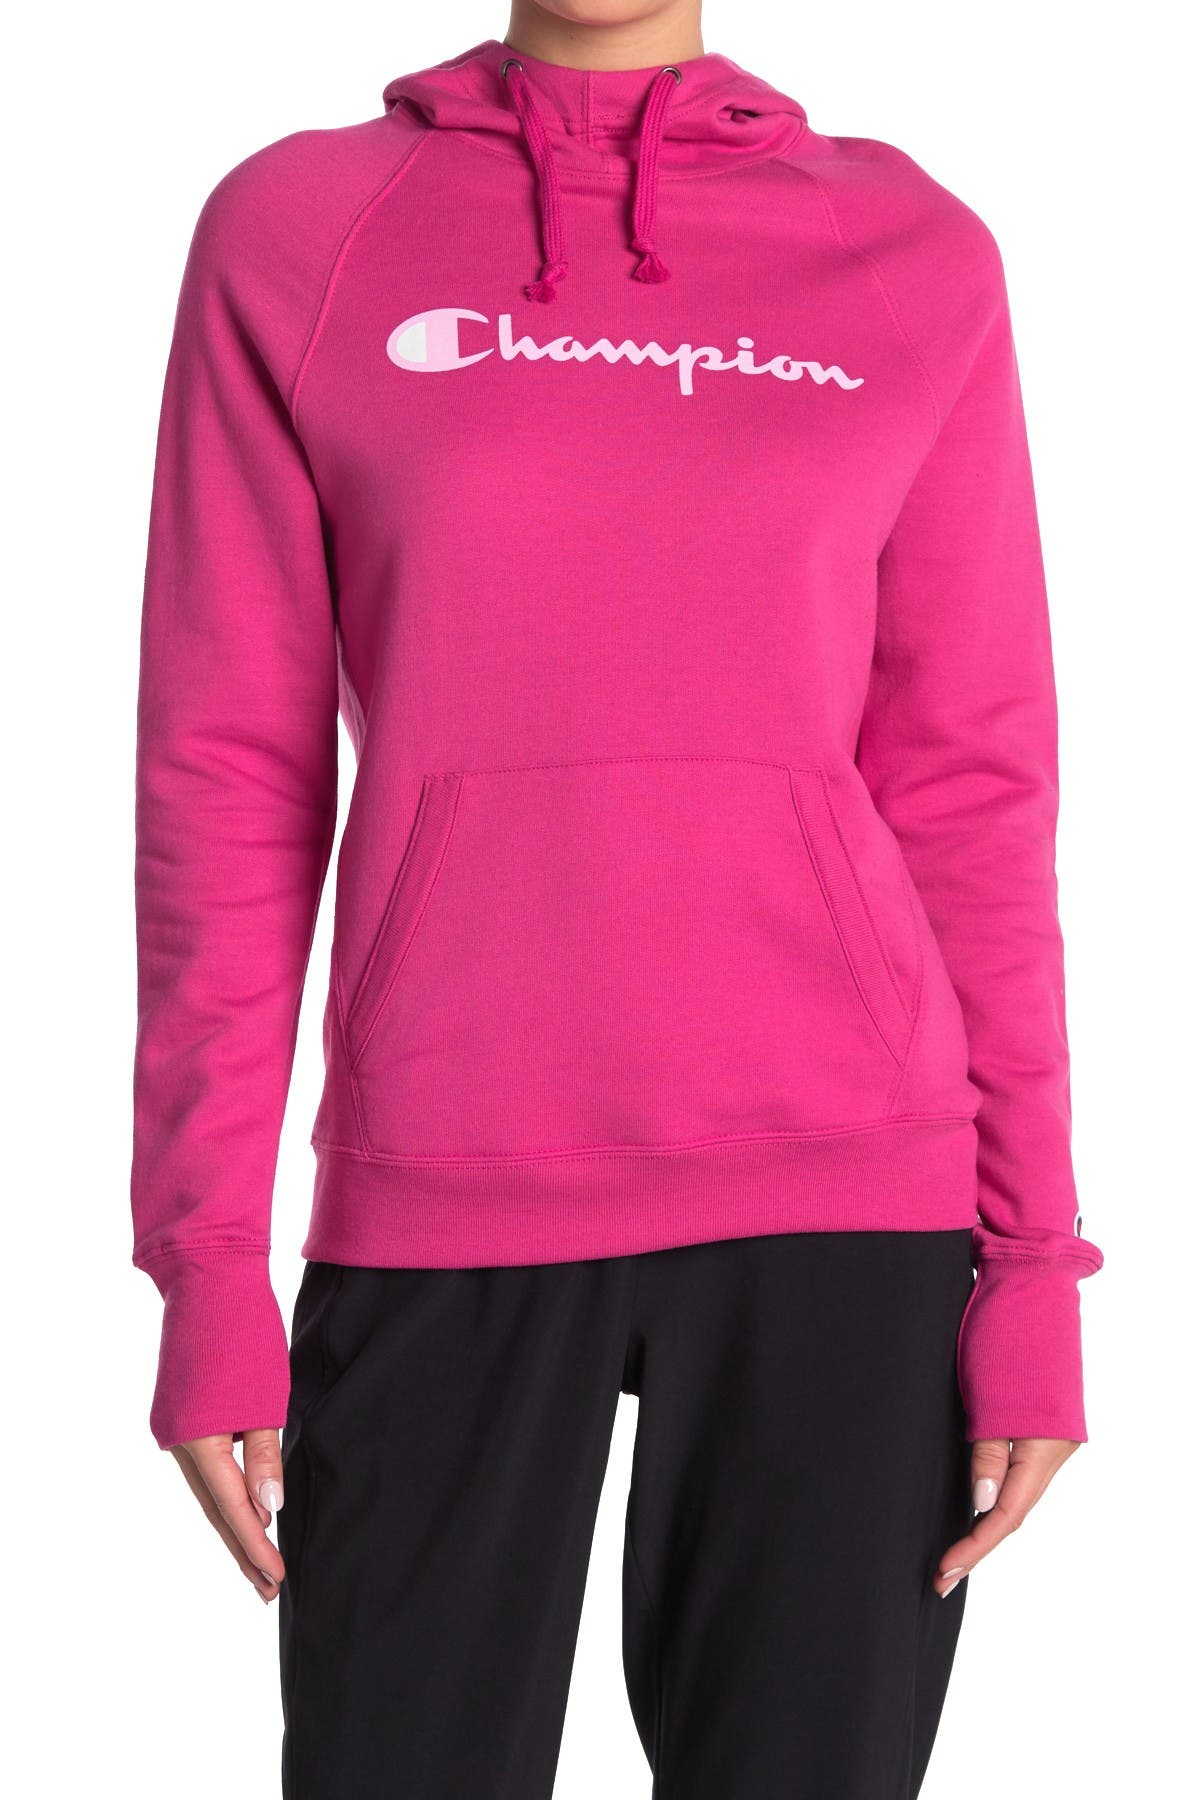 Image of Champion Powerblend Graphic Print Hoodie